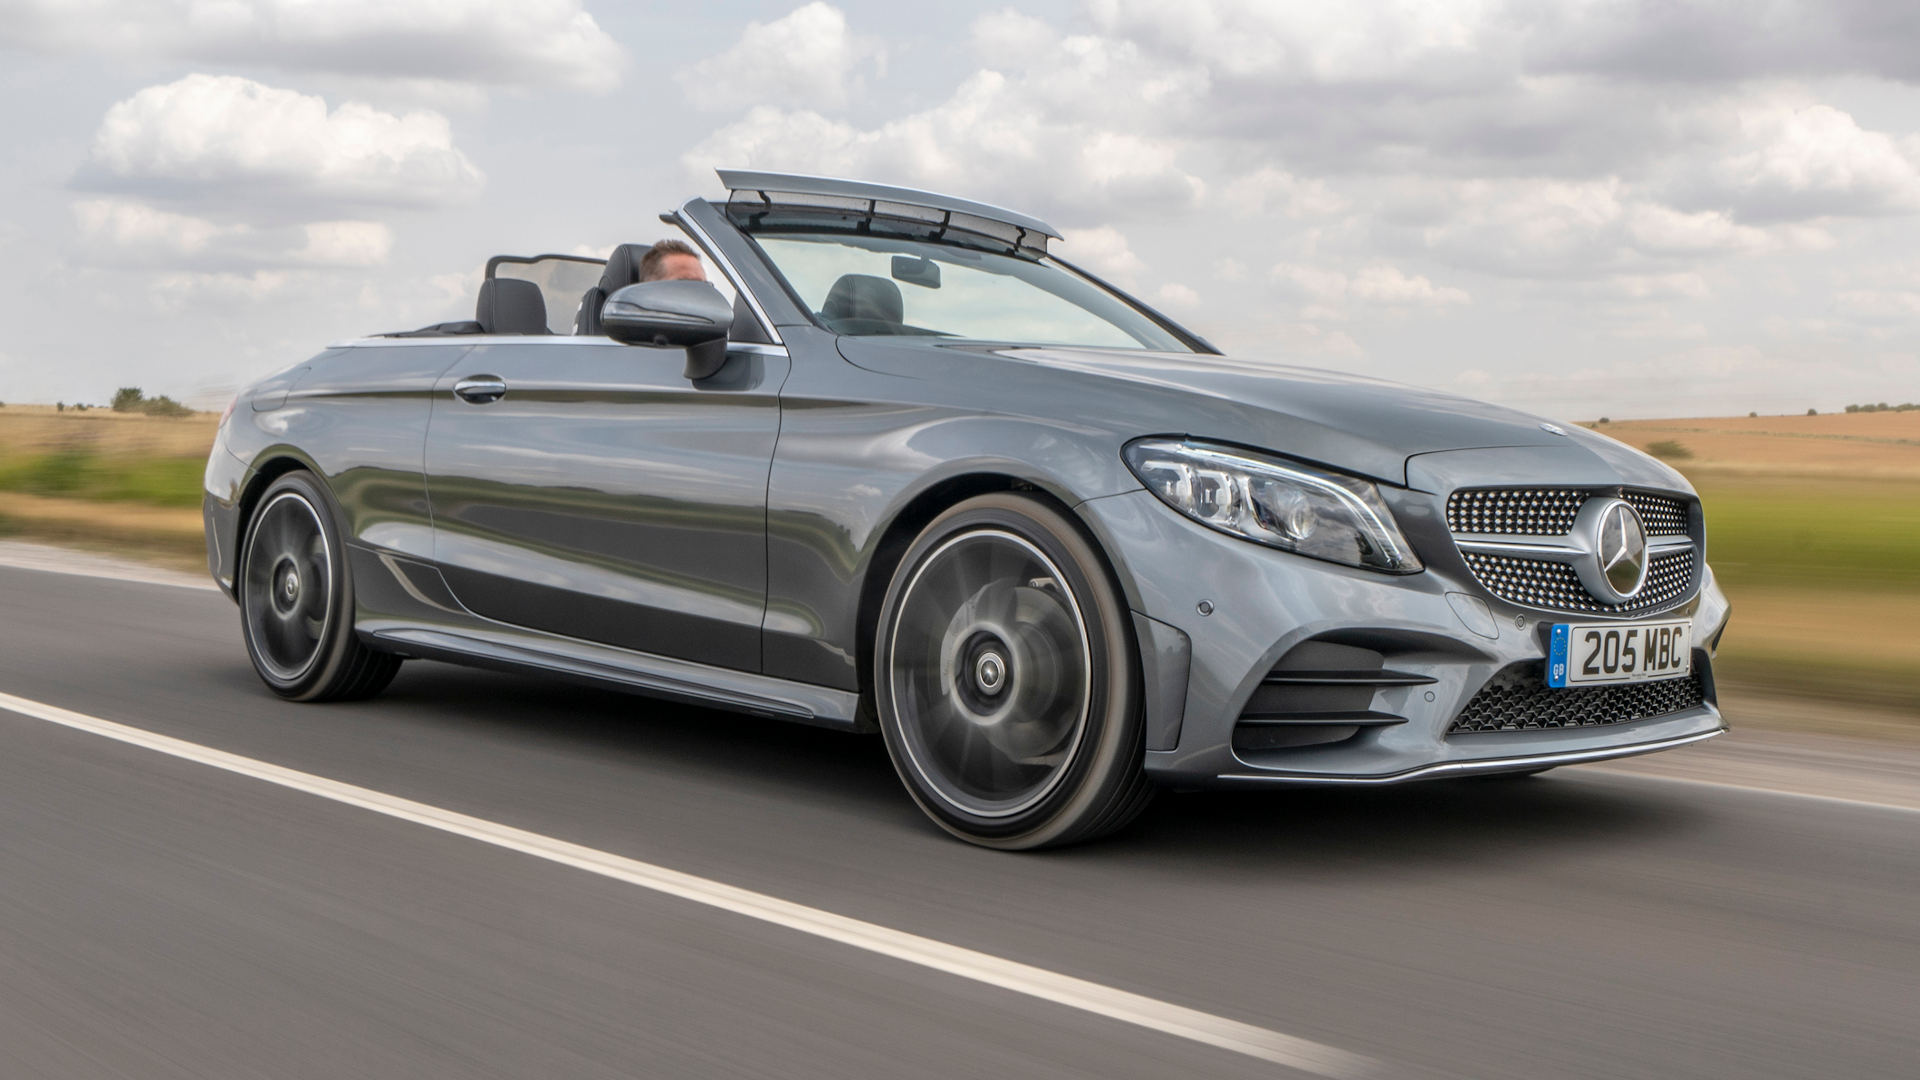 Mercedes Benz Convertible Classic Cars For Sale Autotrader Uk